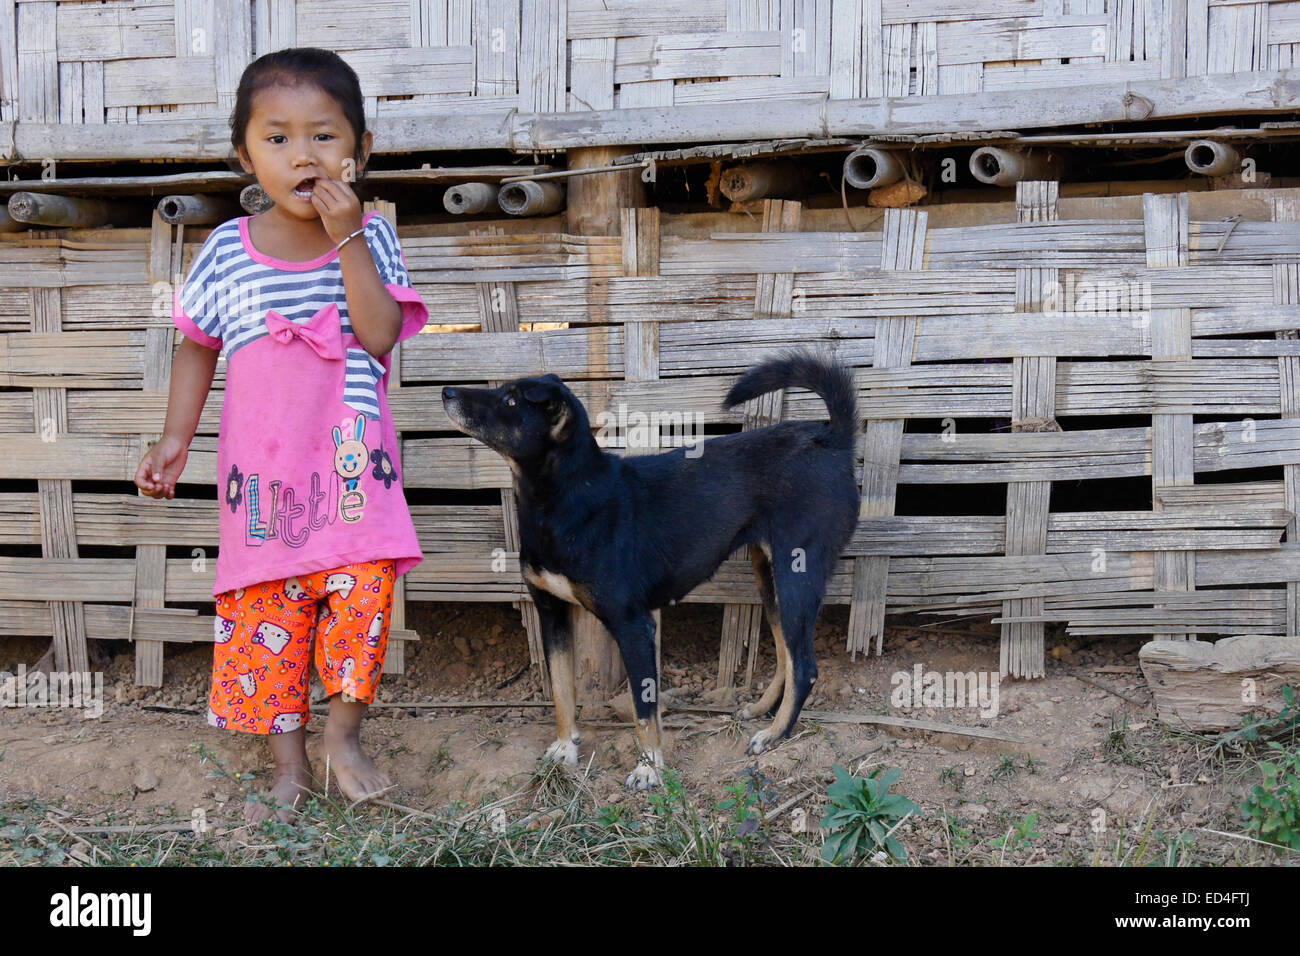 Dog with little girl of Kmou ethnic group, Kiew Mak Nao village, Laos - Stock Image